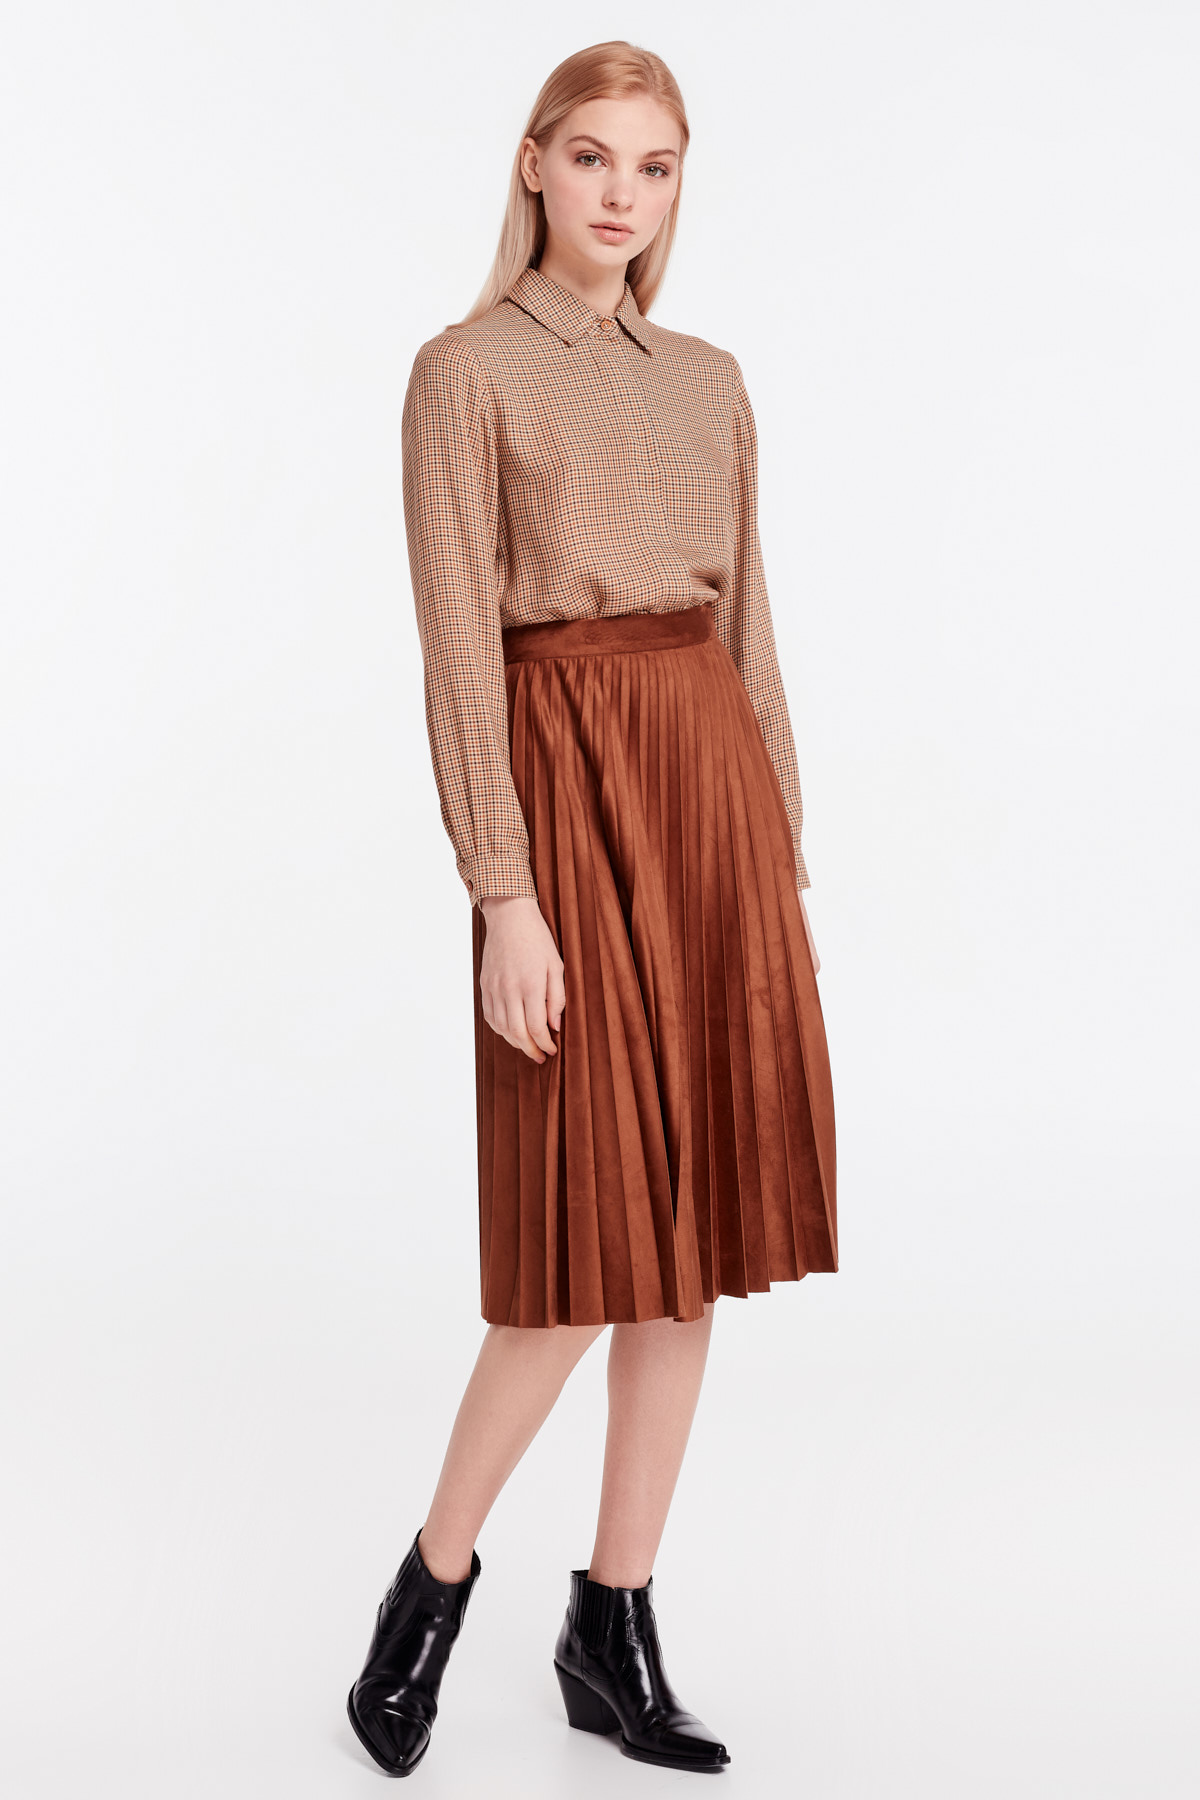 fc91355029 Brown suede pleated skirt photo 6 - MustHave online store